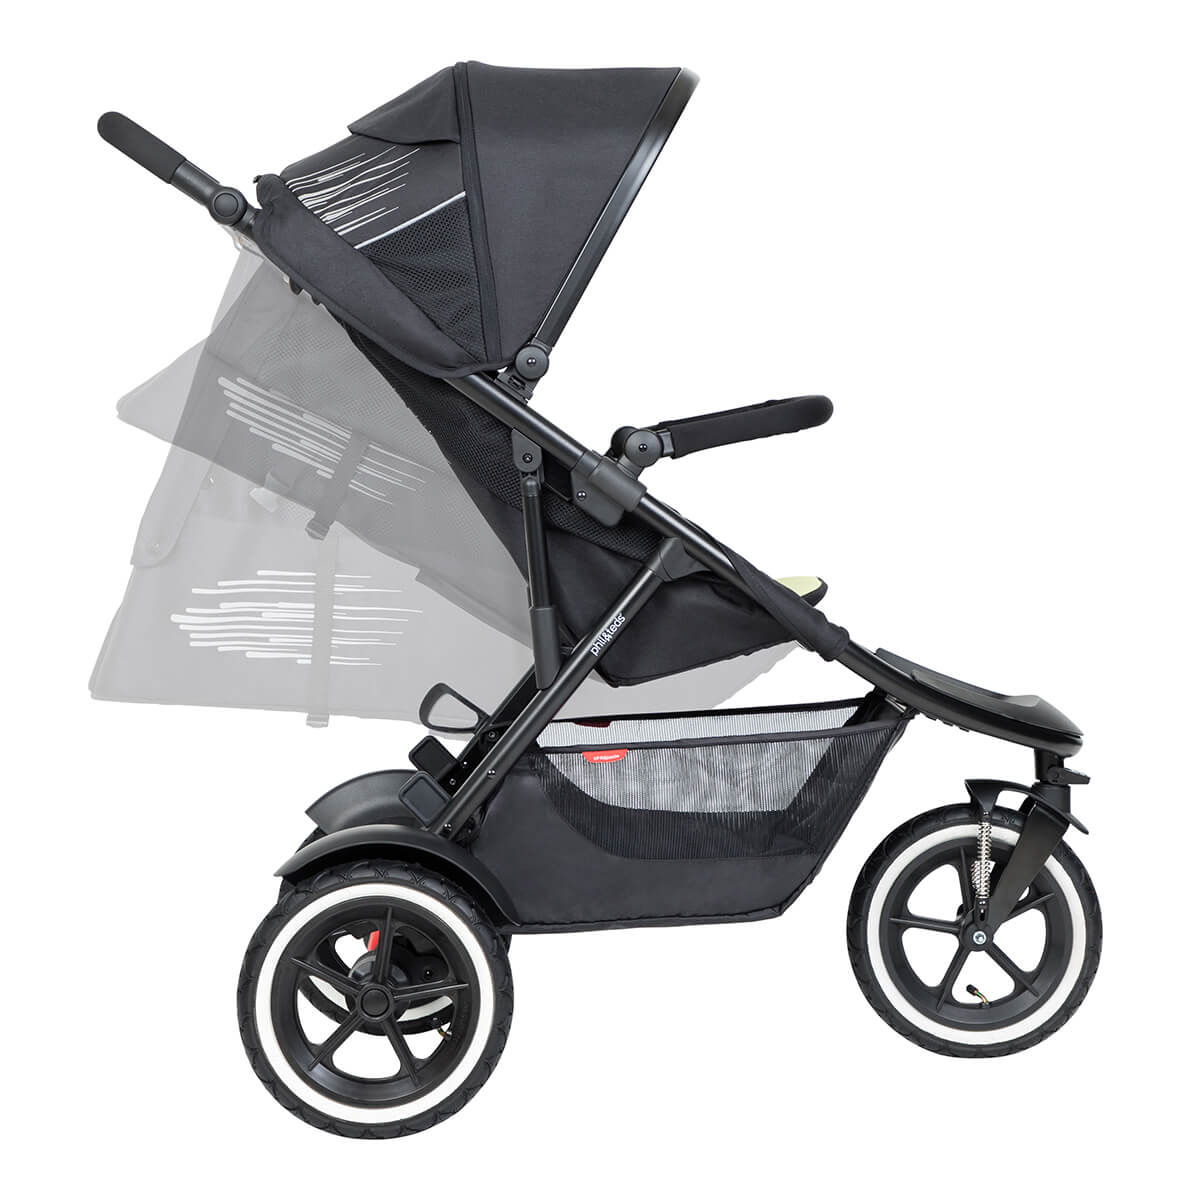 https://cdn.accentuate.io/4513462550624/19440099492024/philteds-sport-buggy-can-recline-in-multiple-angles-including-full-recline-for-newborn-baby-v1626486530334.jpg?1200x1200